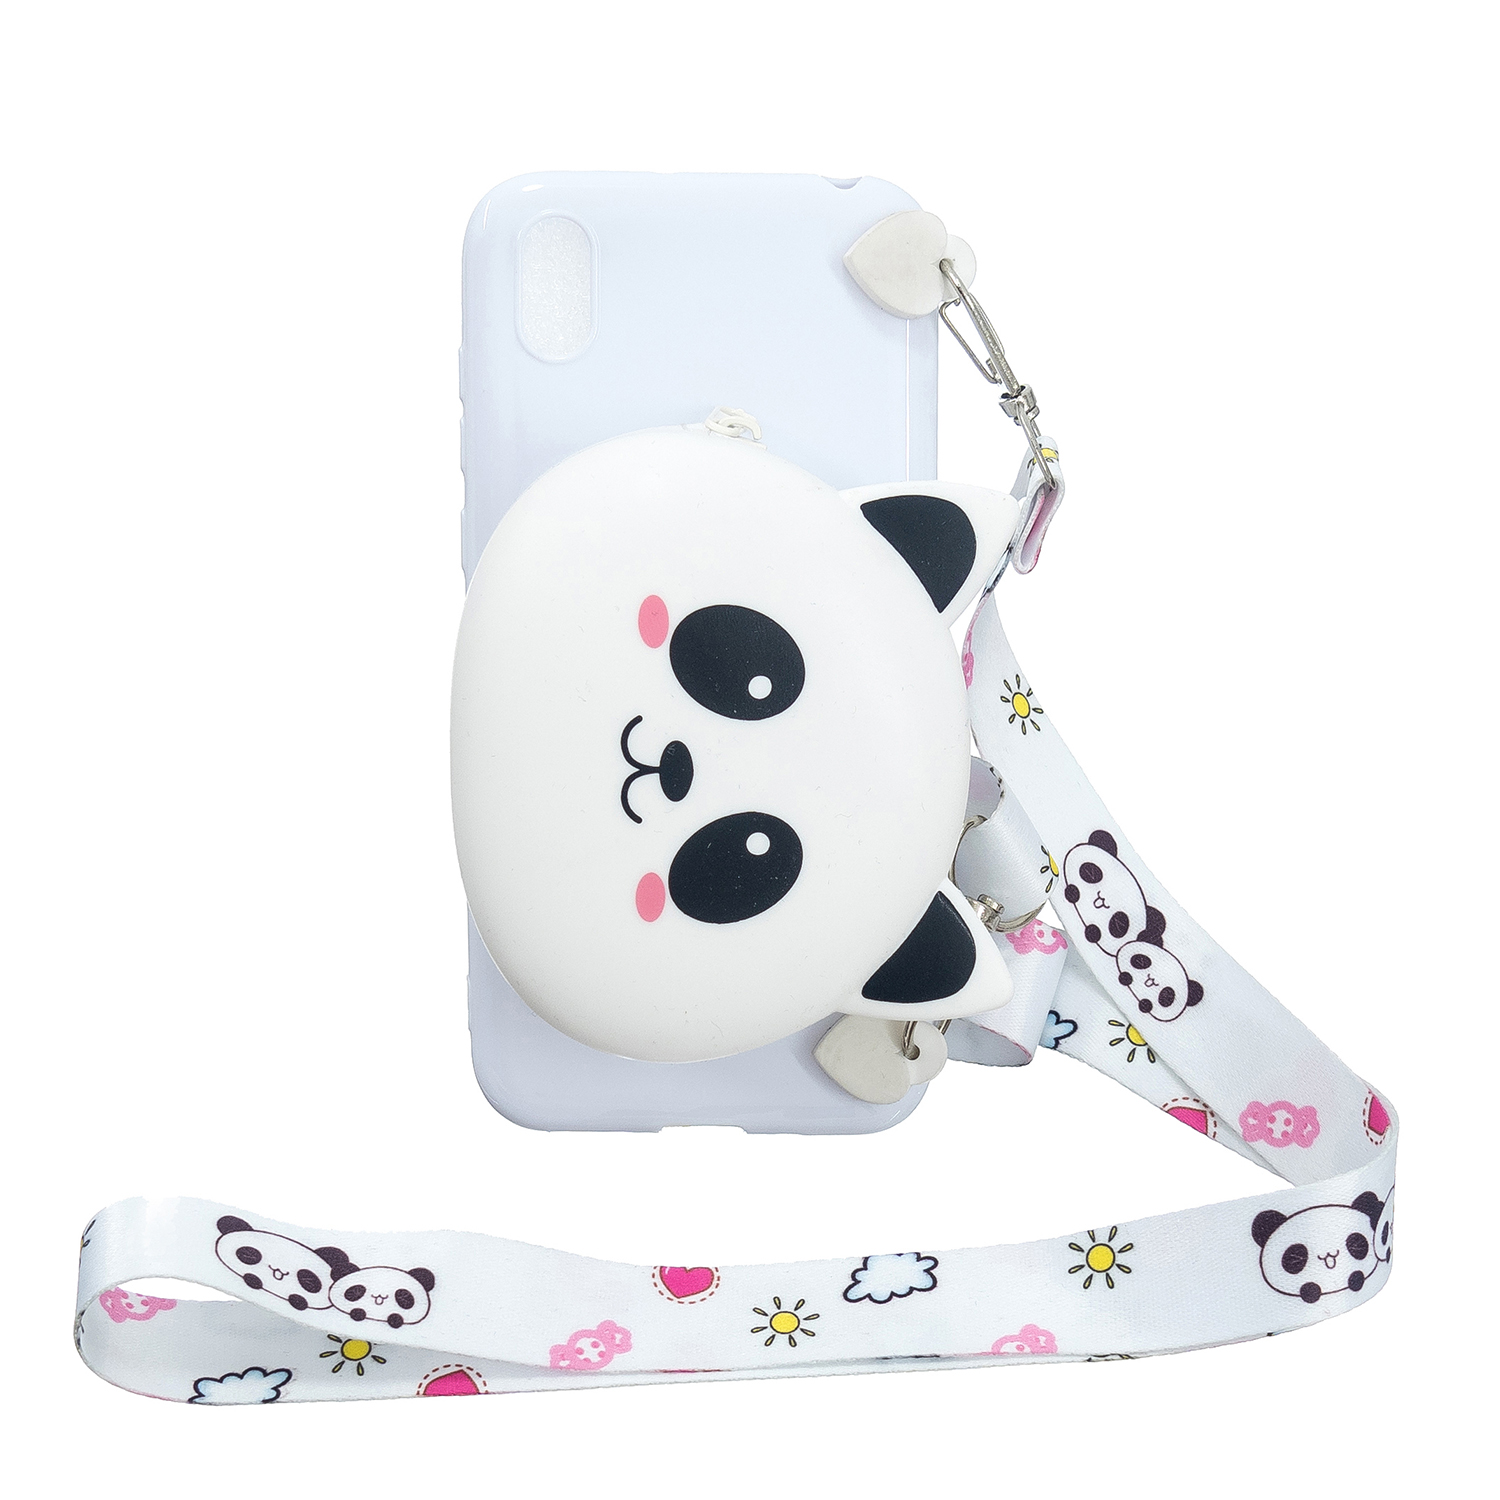 For HUAWEI Y5 2018/Y5 2019 Cellphone Case Mobile Phone Shell Shockproof TPU Cover with Cartoon Cat Pig Panda Coin Purse Lovely Shoulder Starp  White